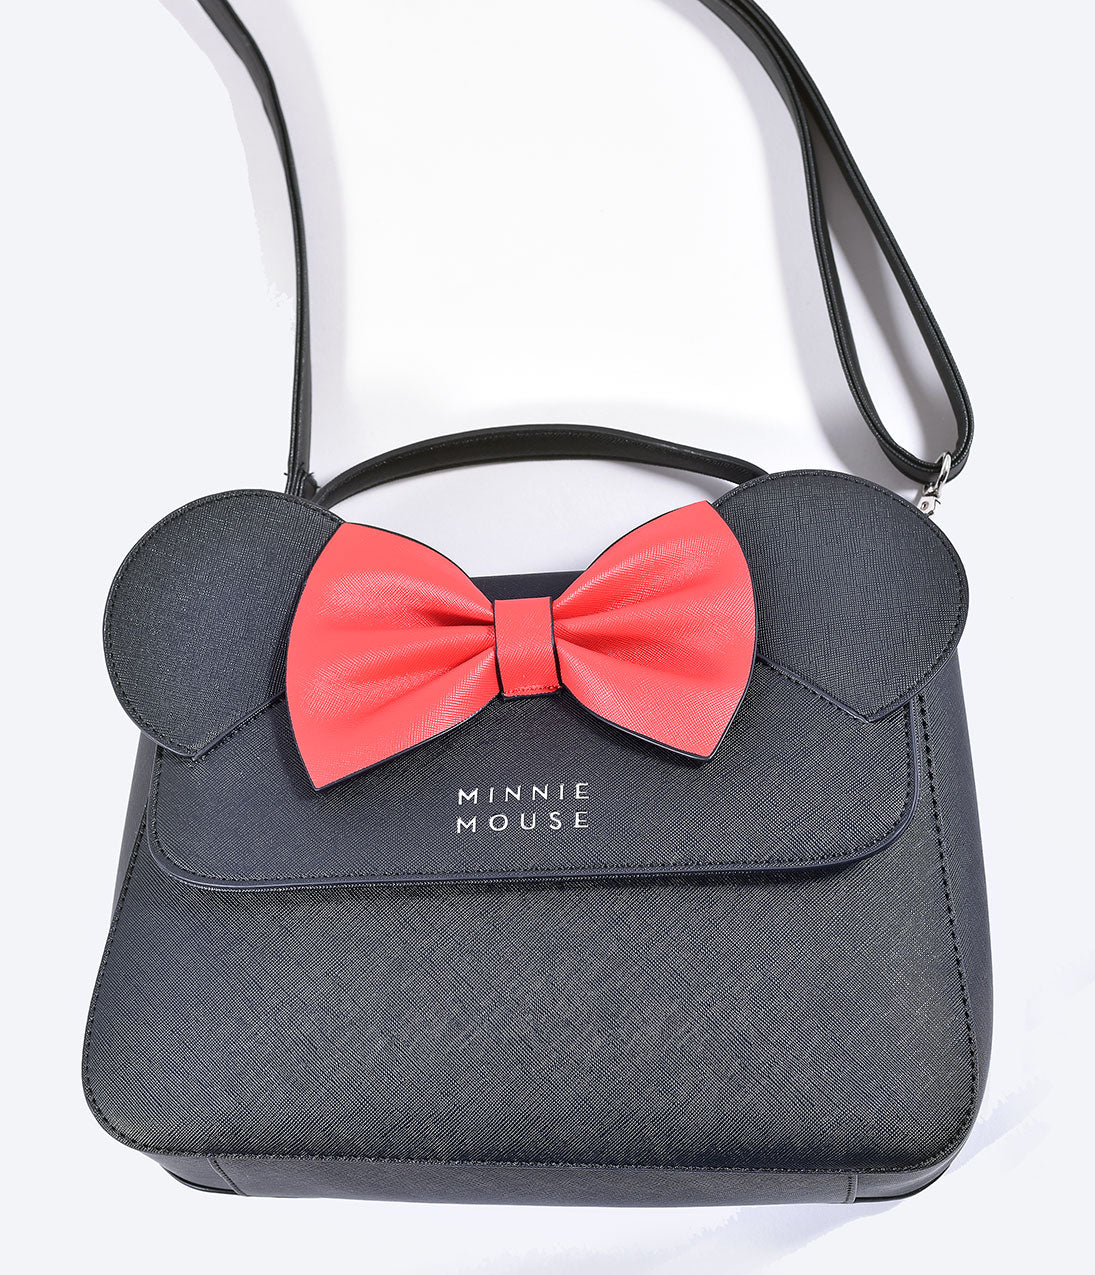 Vintage & Retro Handbags, Purses, Wallets, Bags Loungefly Black  Red Bow Leatherette Minnie Mouse Crossbody Bag $64.00 AT vintagedancer.com